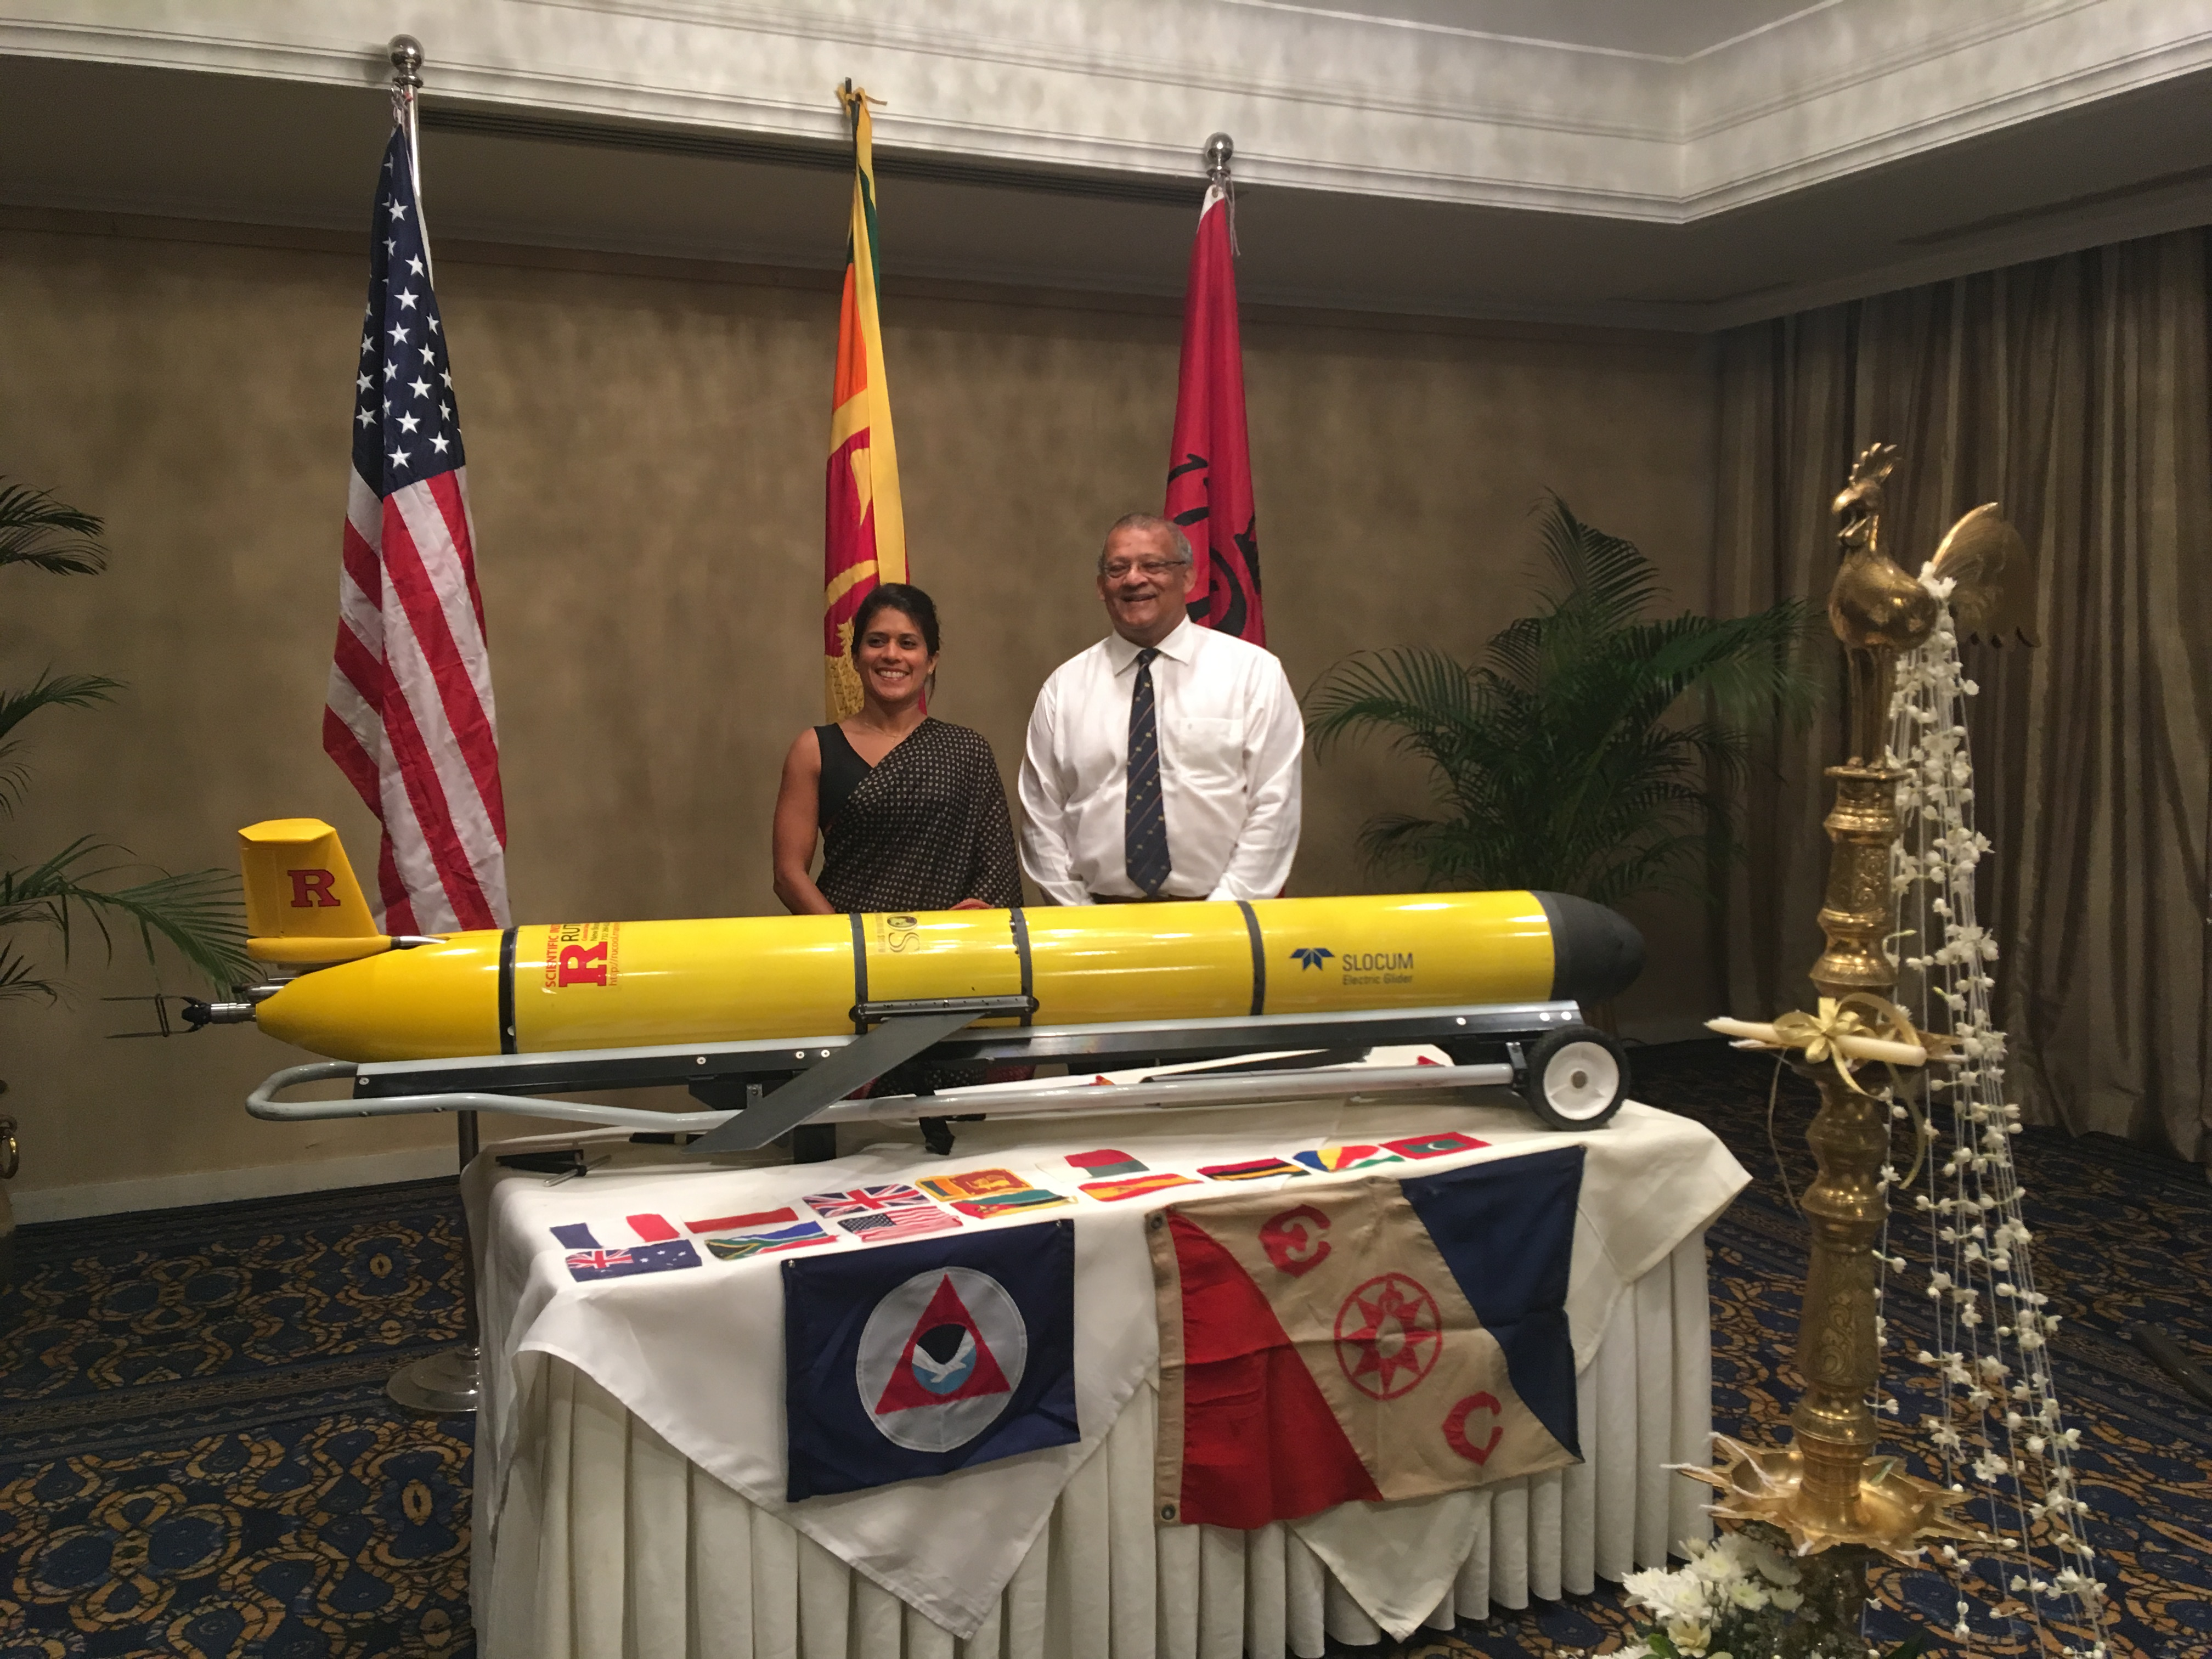 RU29 is prepared for a welcoming ceremony in Colombo, Sri Lanka organized by Prof. Chari Pattiaratchi (right). Dr. Asha de Vos (left) served as Master of Ceremonies. Displayed flags include U.S., Sri Lanka and Rutgers (on stands), NOAA and Explorers Club (side of table), and the international partners (tabletop). A traditional Sri Lanka oil lamp was lighted to open the ceremony.